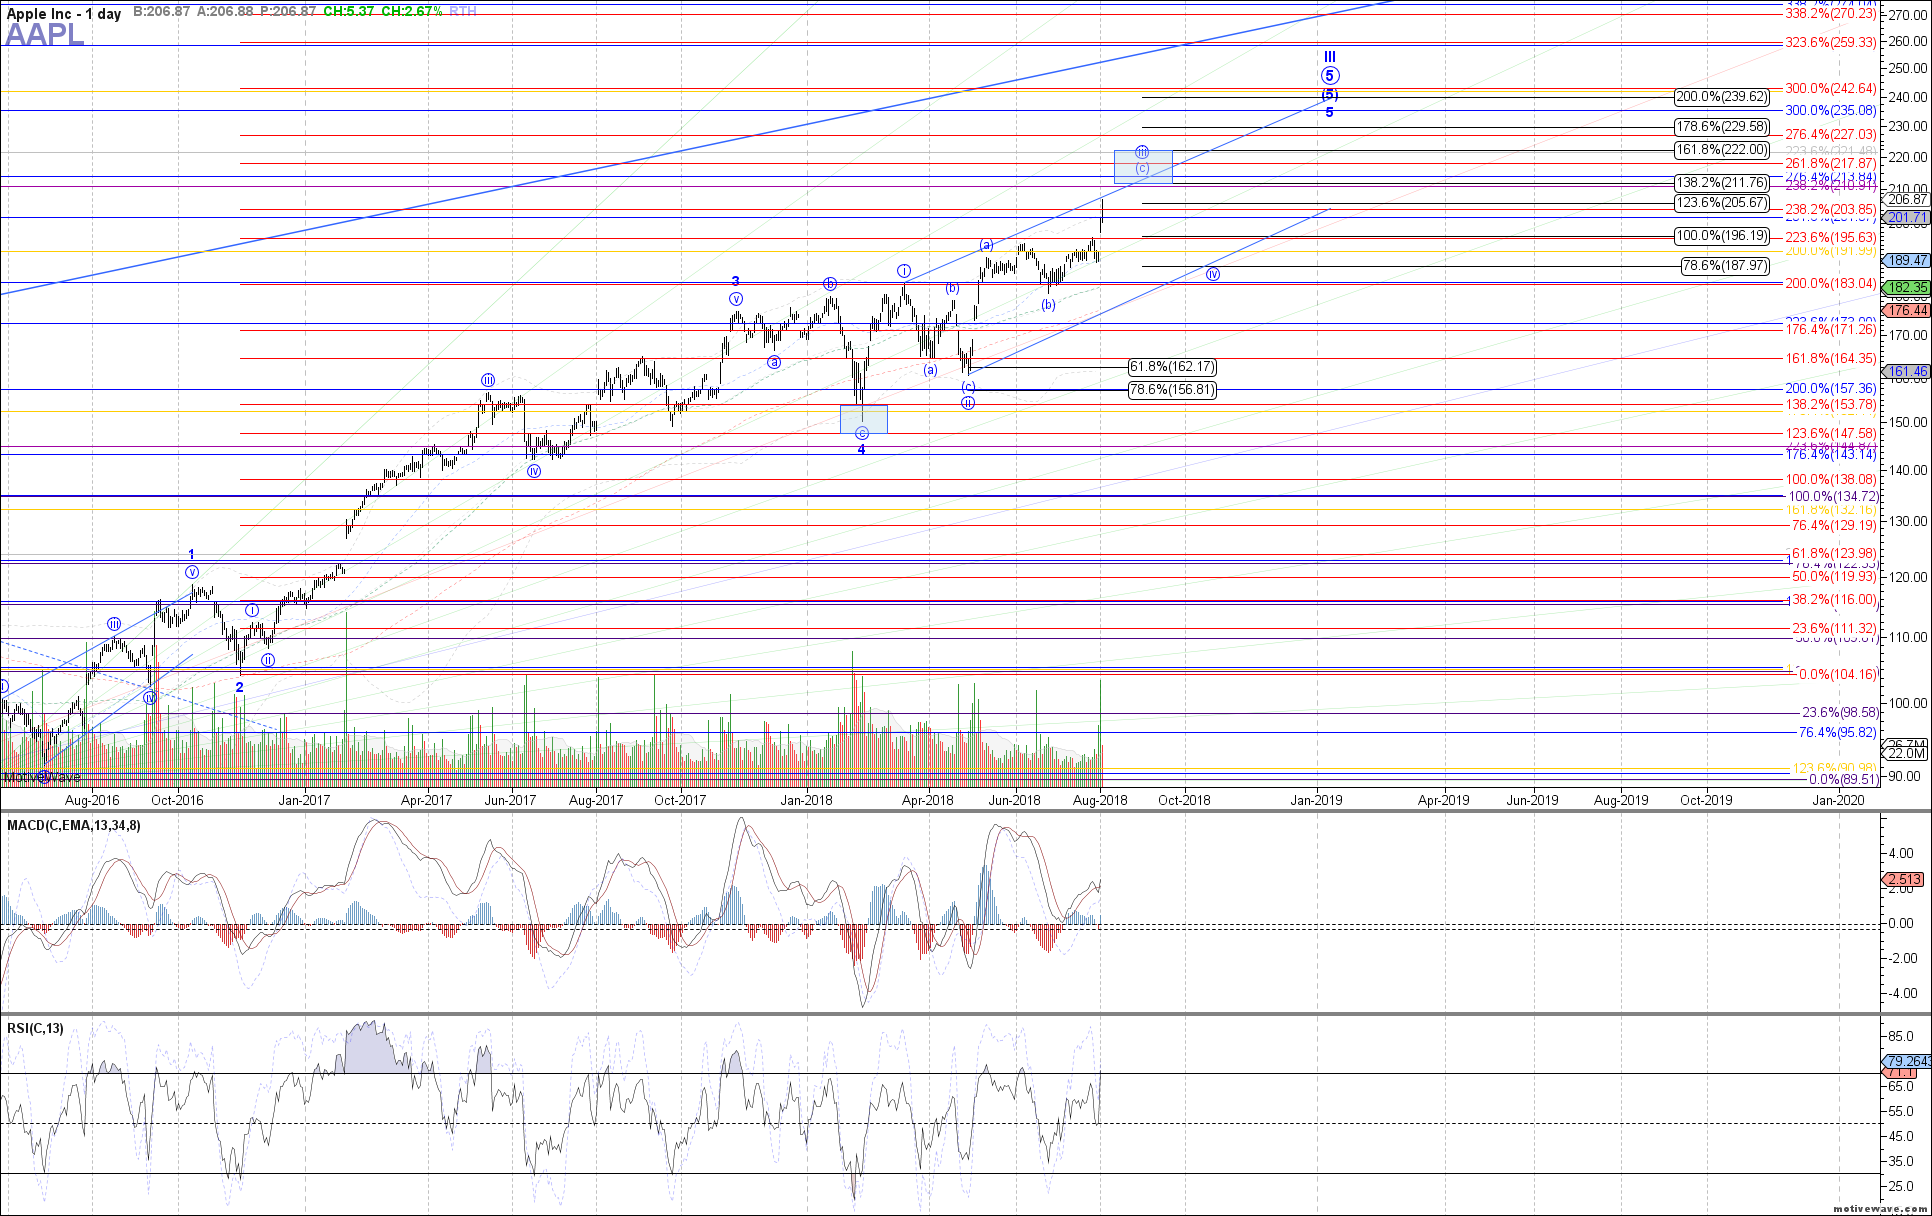 AAPL - Primary Analysis - Aug-02 0846 AM (1 day)